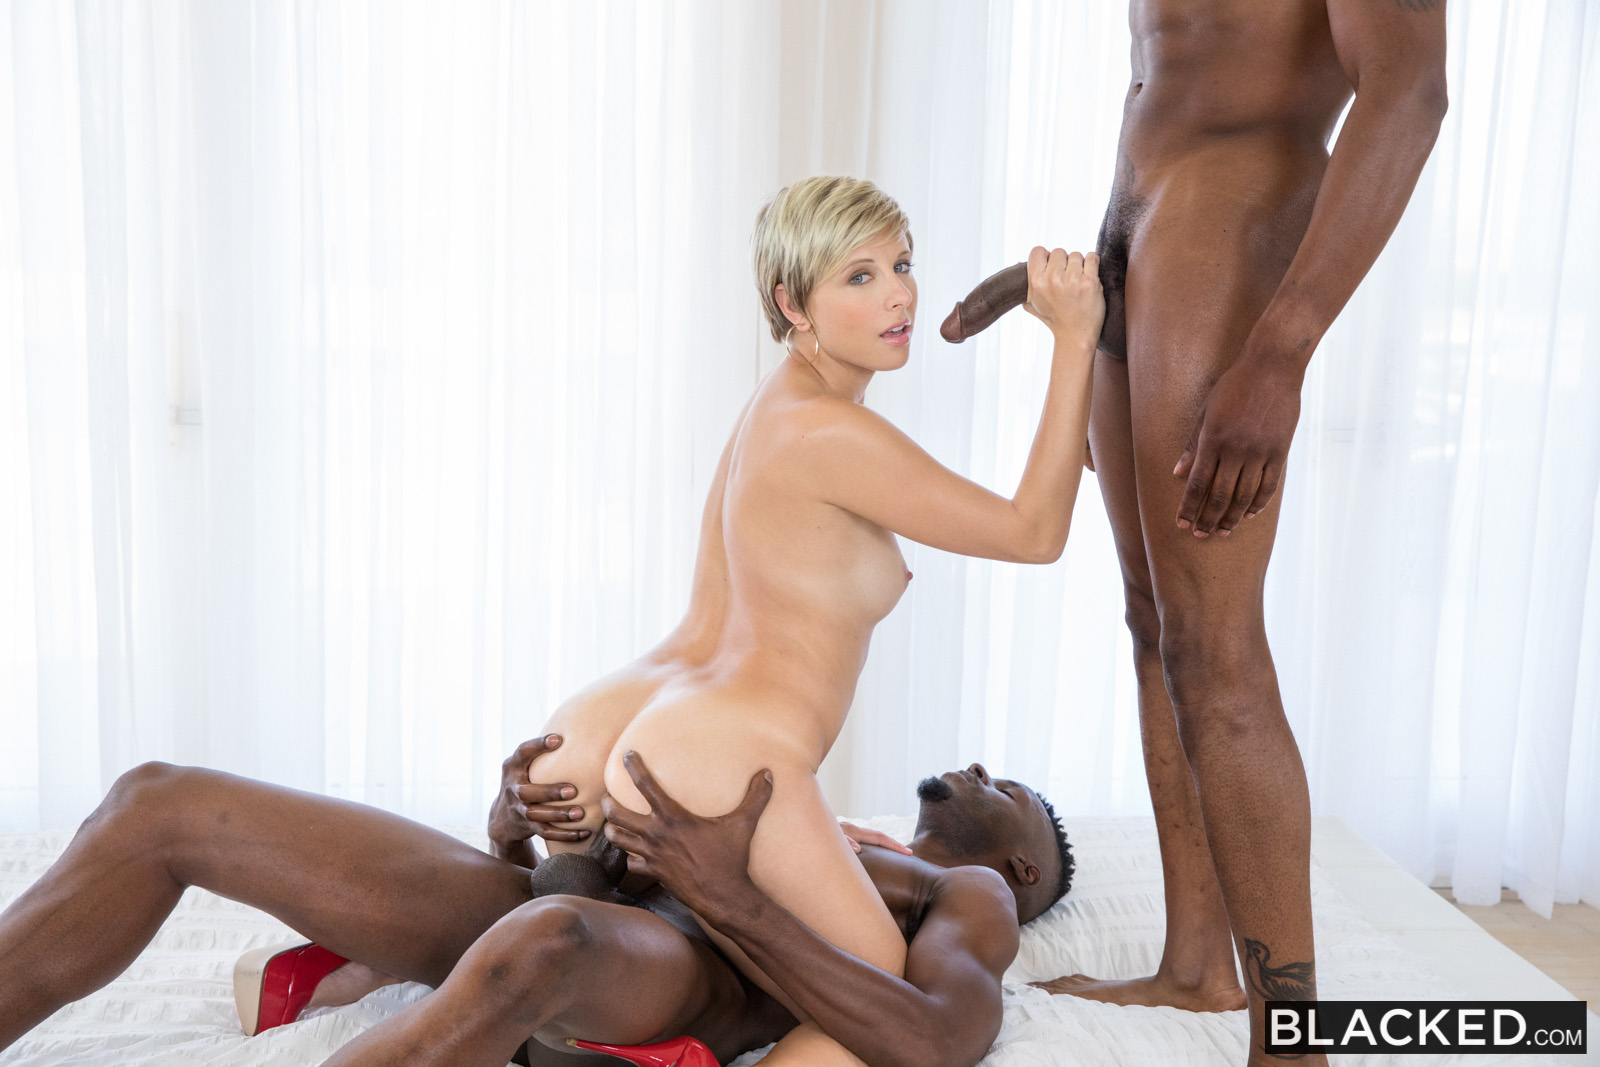 Blacked curvy latina gets dominated by a famous rapper - 37 part 3